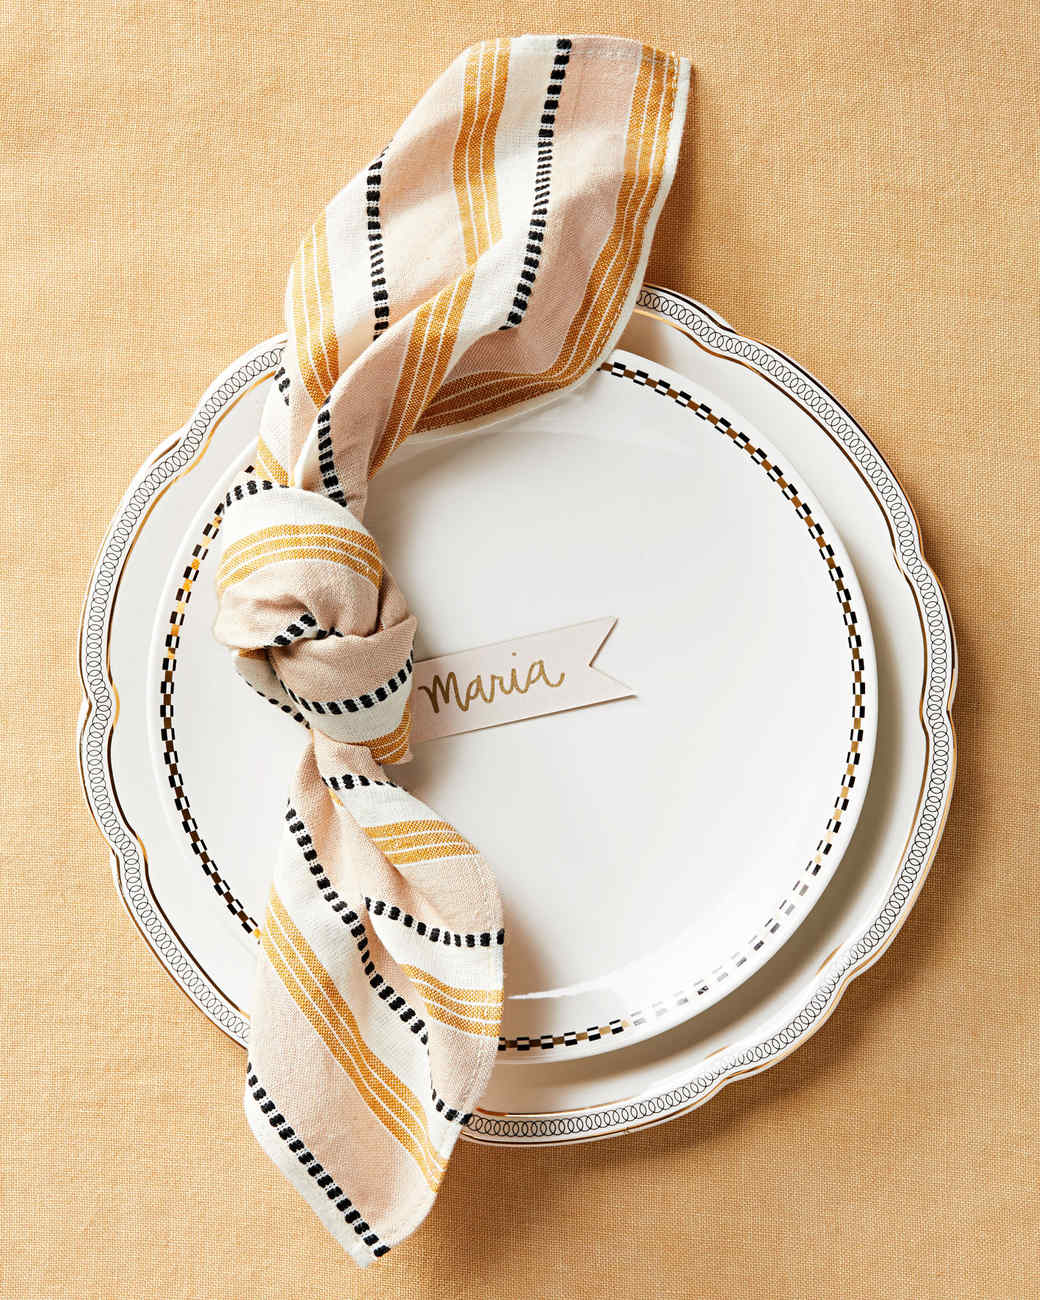 How to Fold a Napkin 15 Ways | Martha Stewart